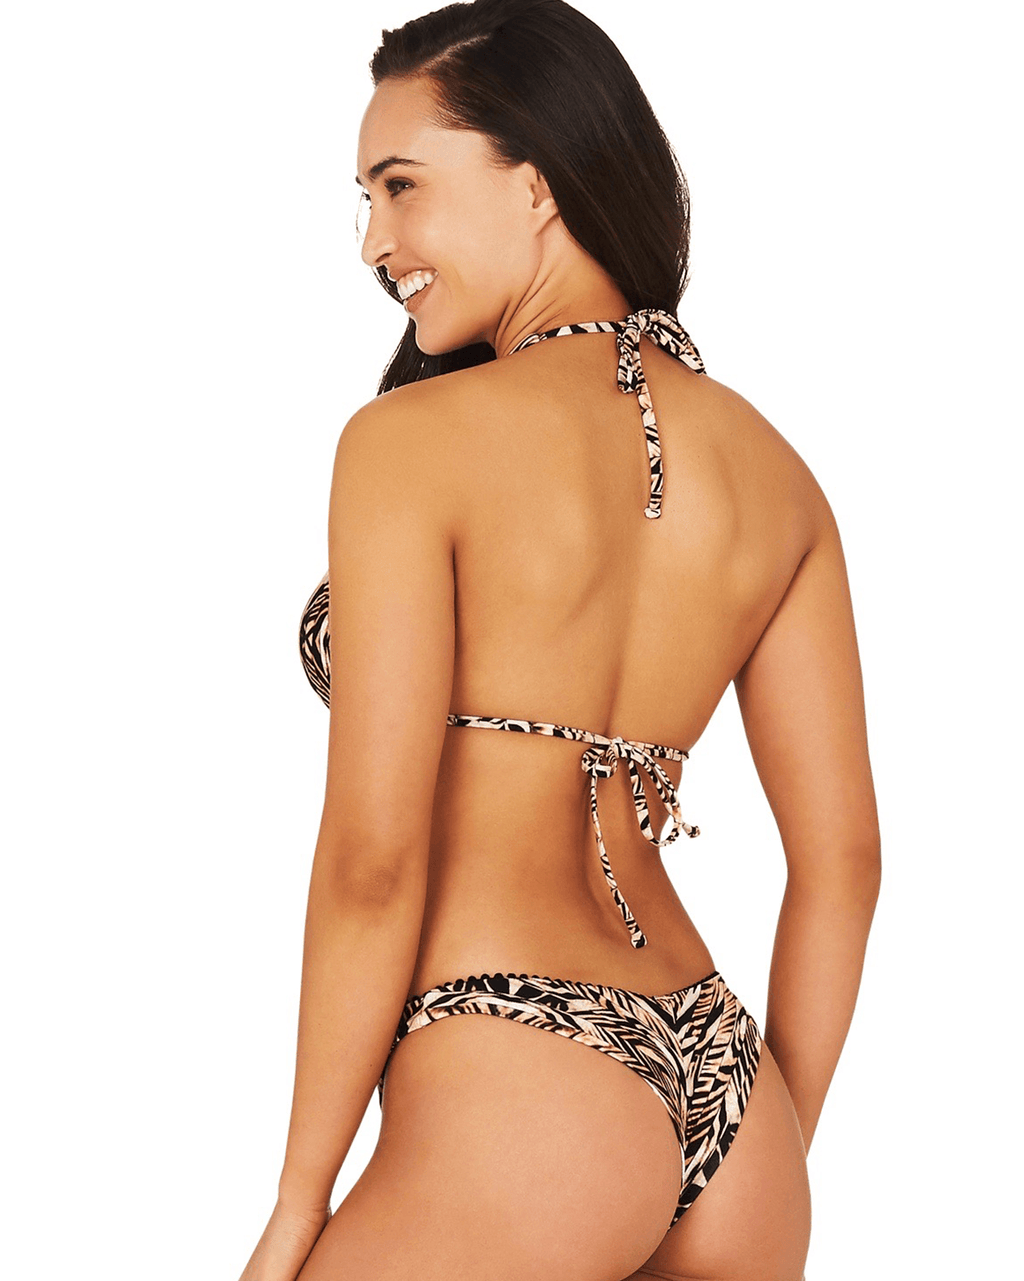 TIGRESS LONGLINE SLIDE TRIANGLE BIKINI TOP